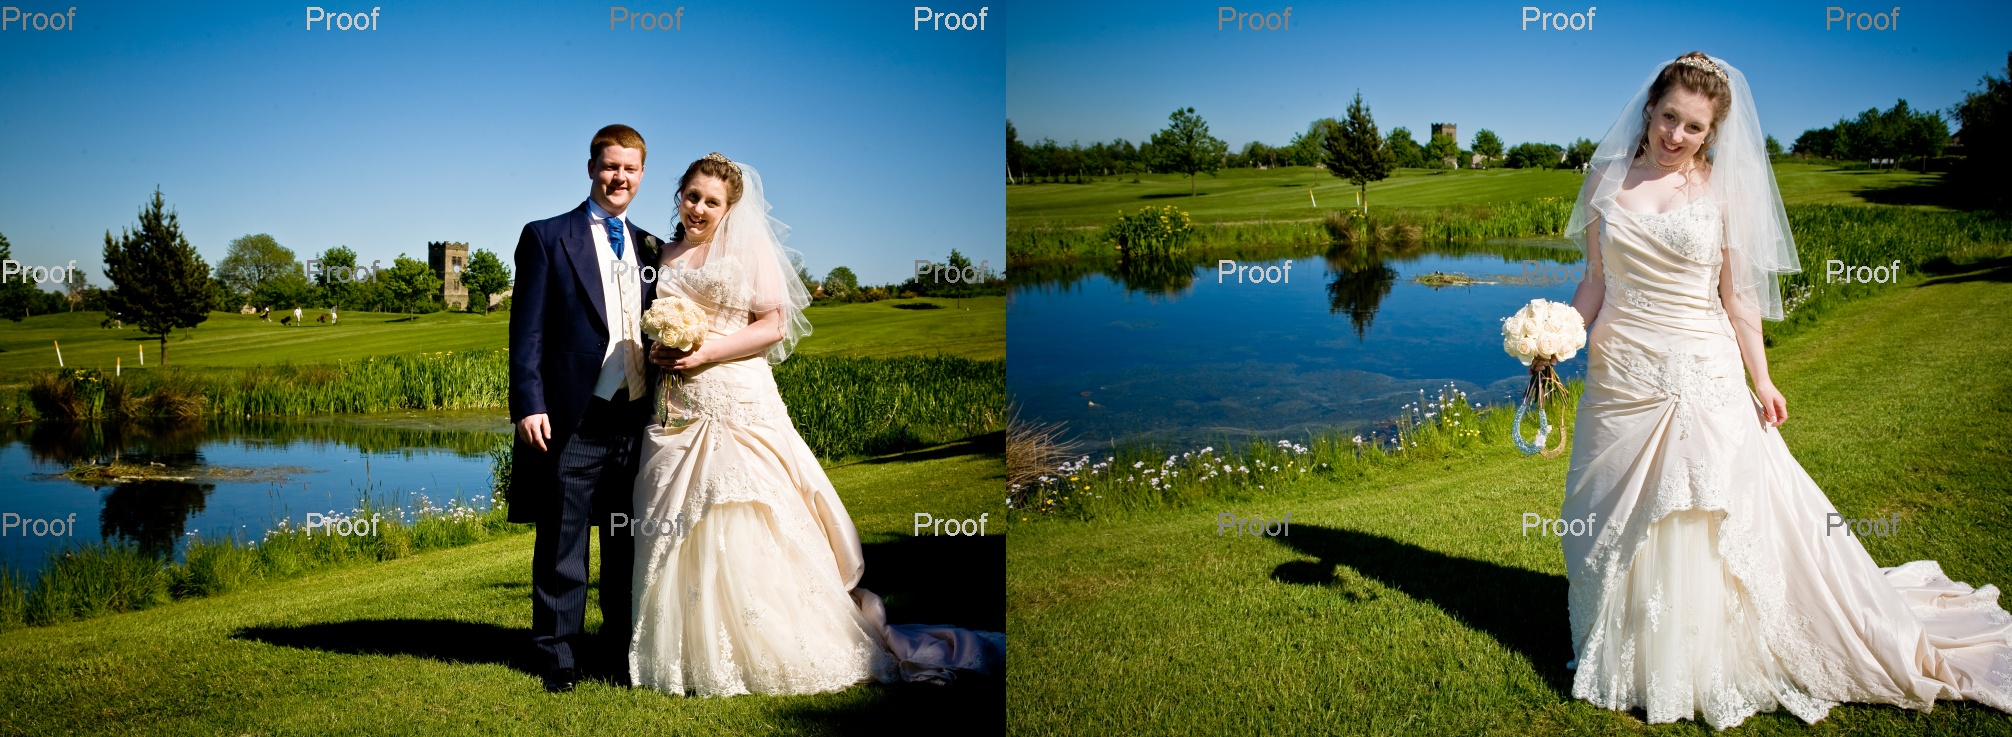 Bride and groom on the golf course - pages 36-37 wedding storybook album